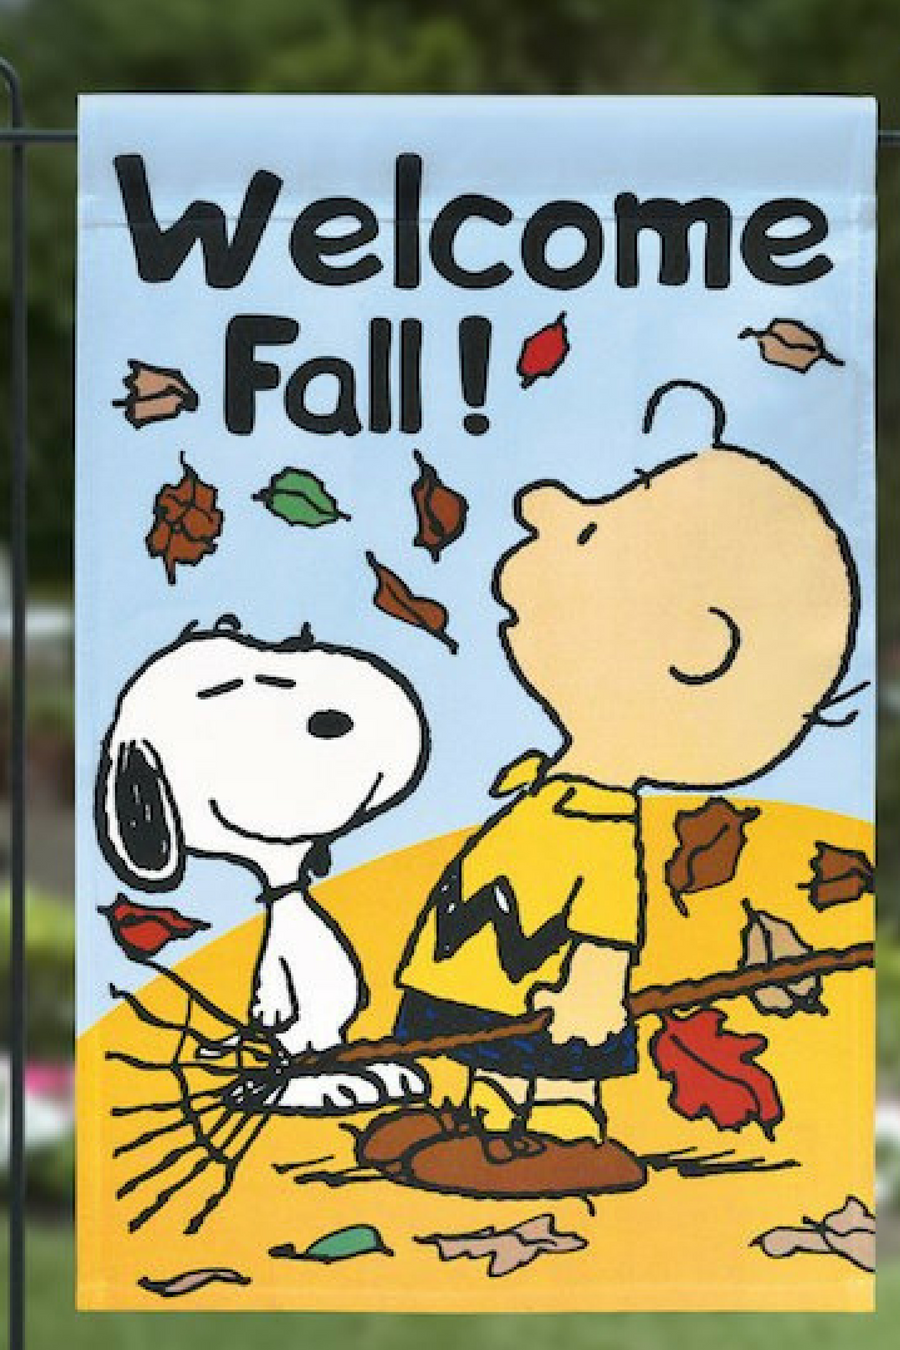 I Need This Welcome Fall Garden Flag Peanuts Fall Autumn Leaves Ad Oybpinners Banner Flag Decor Decoration Welcome Fall Snoopy Love Snoopy